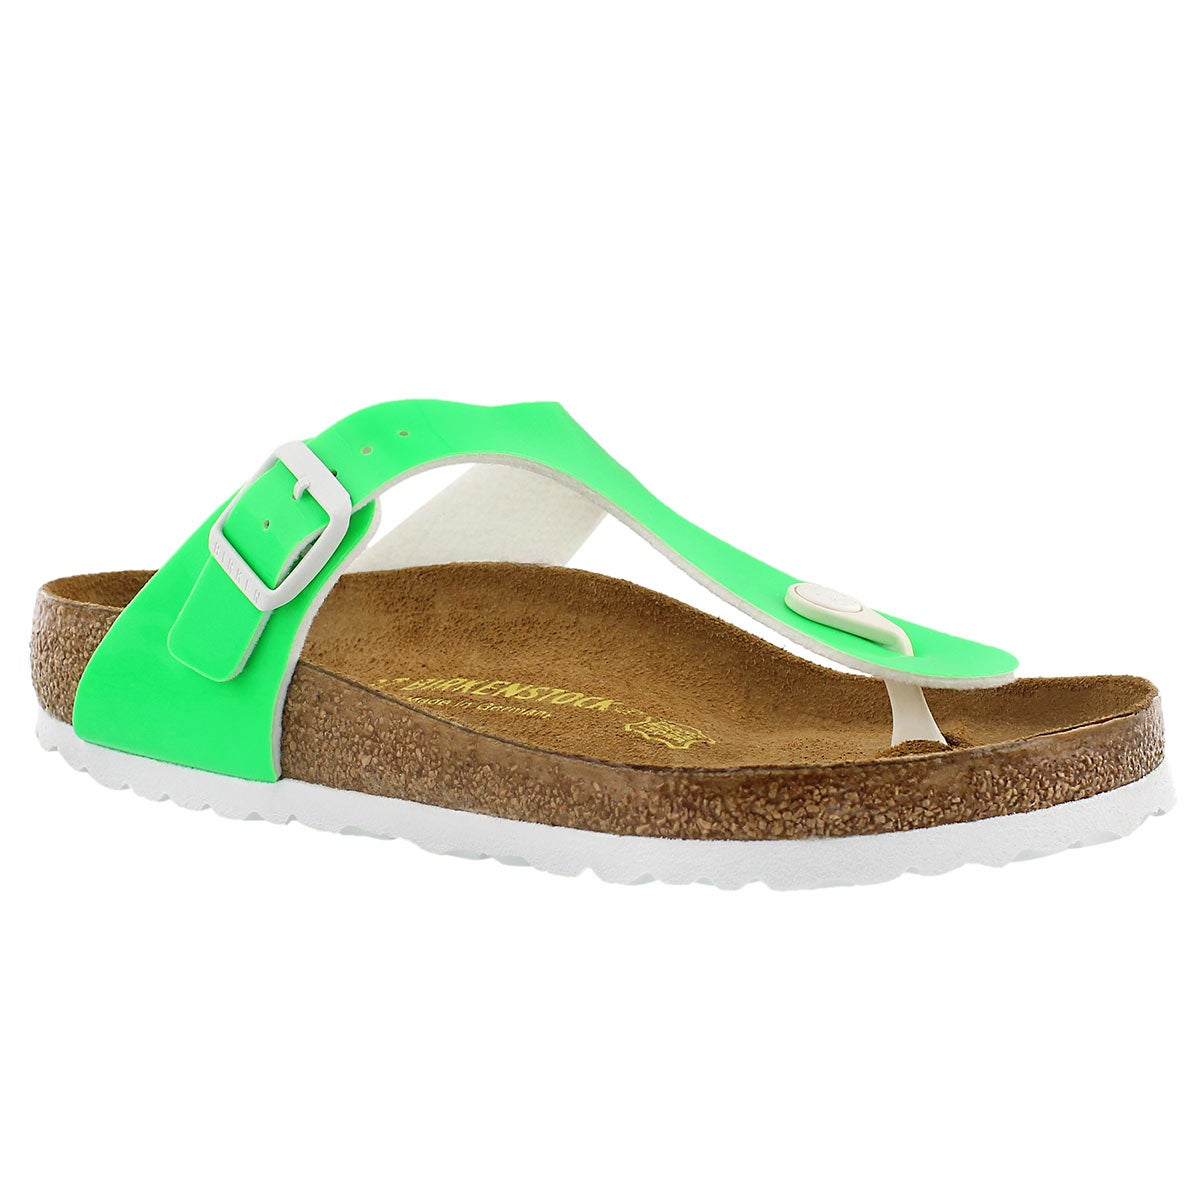 Women's GIZEH neon green thong sandals